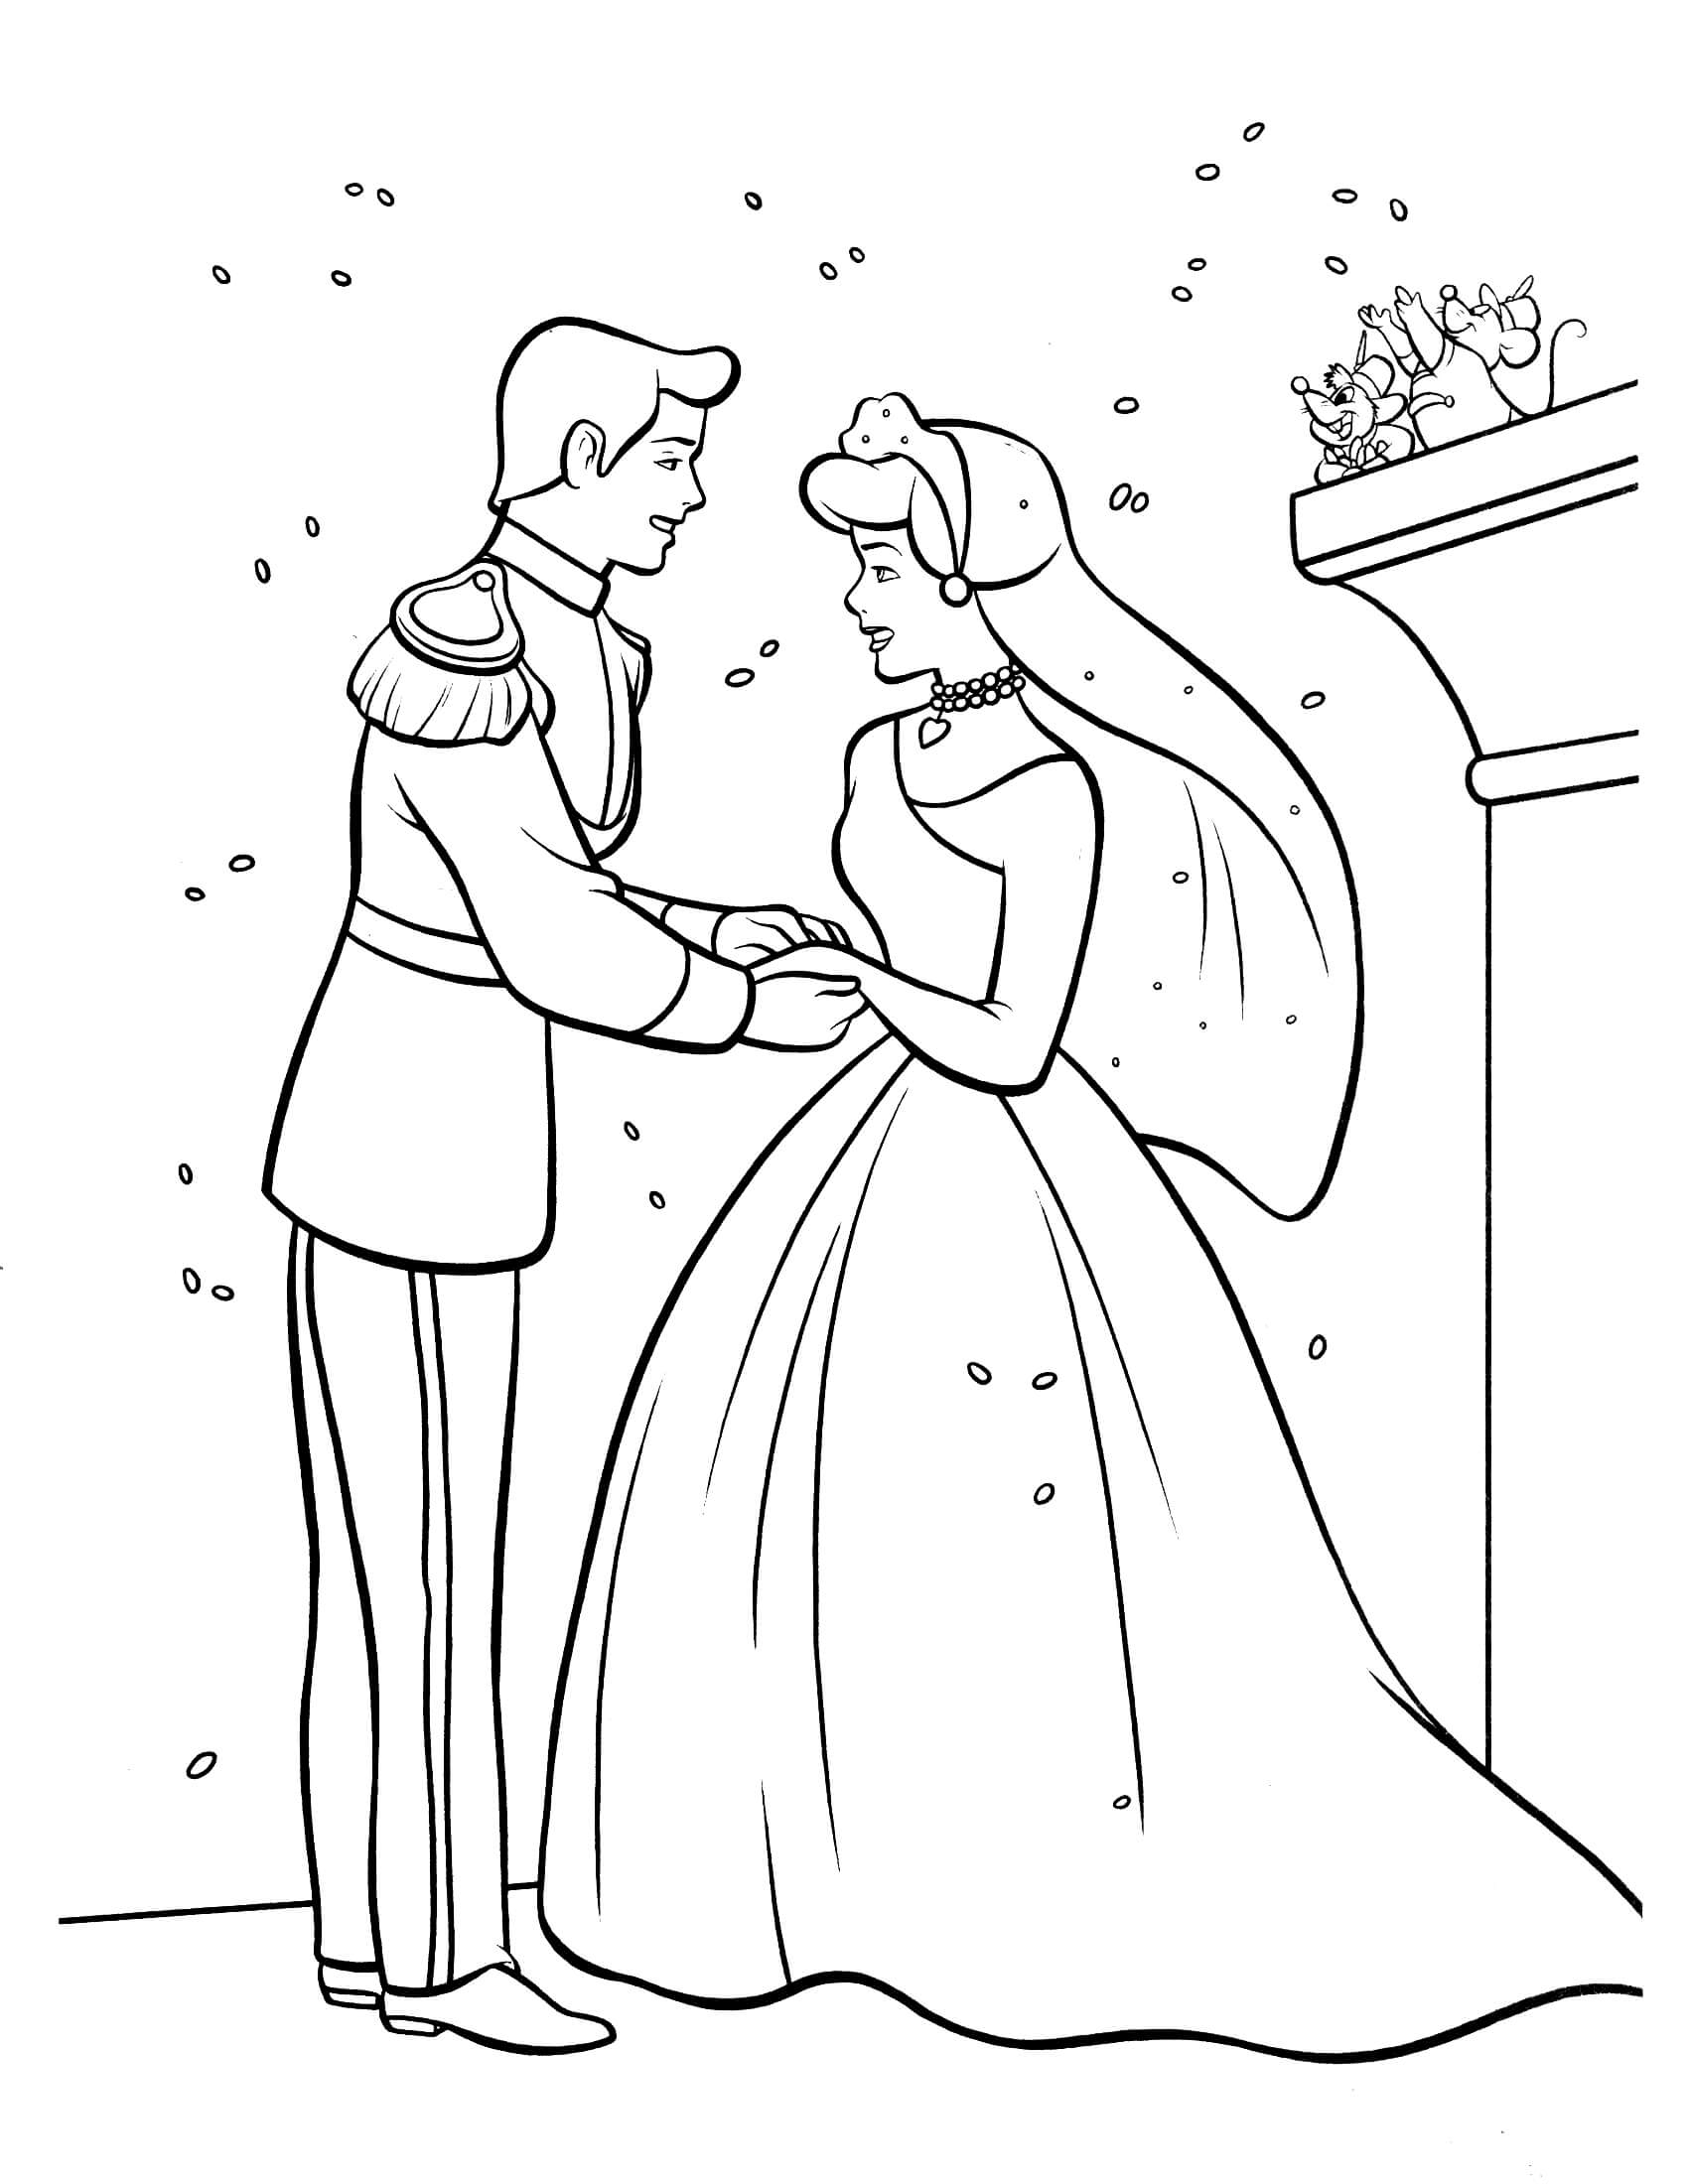 23 Snow White Coloring Pages Collections   FREE COLORING PAGES - Part 2